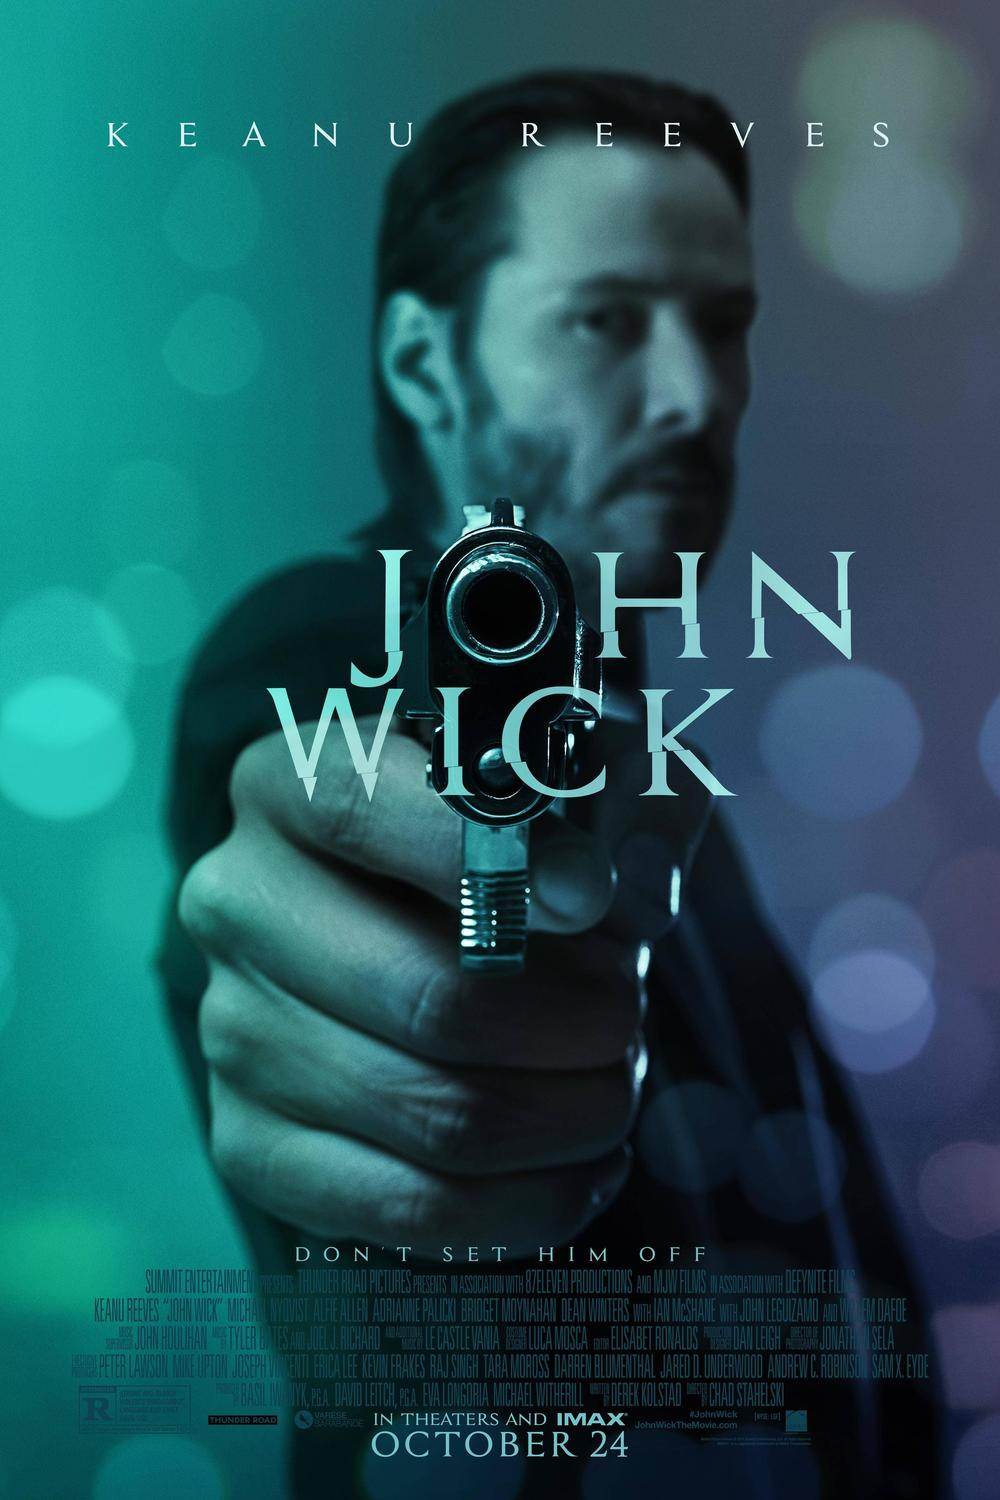 john-wick-imagens-2-win-assassin-s-creed-a-john-wick-t-shirt-poster-and-free-movie-tickets.jpeg